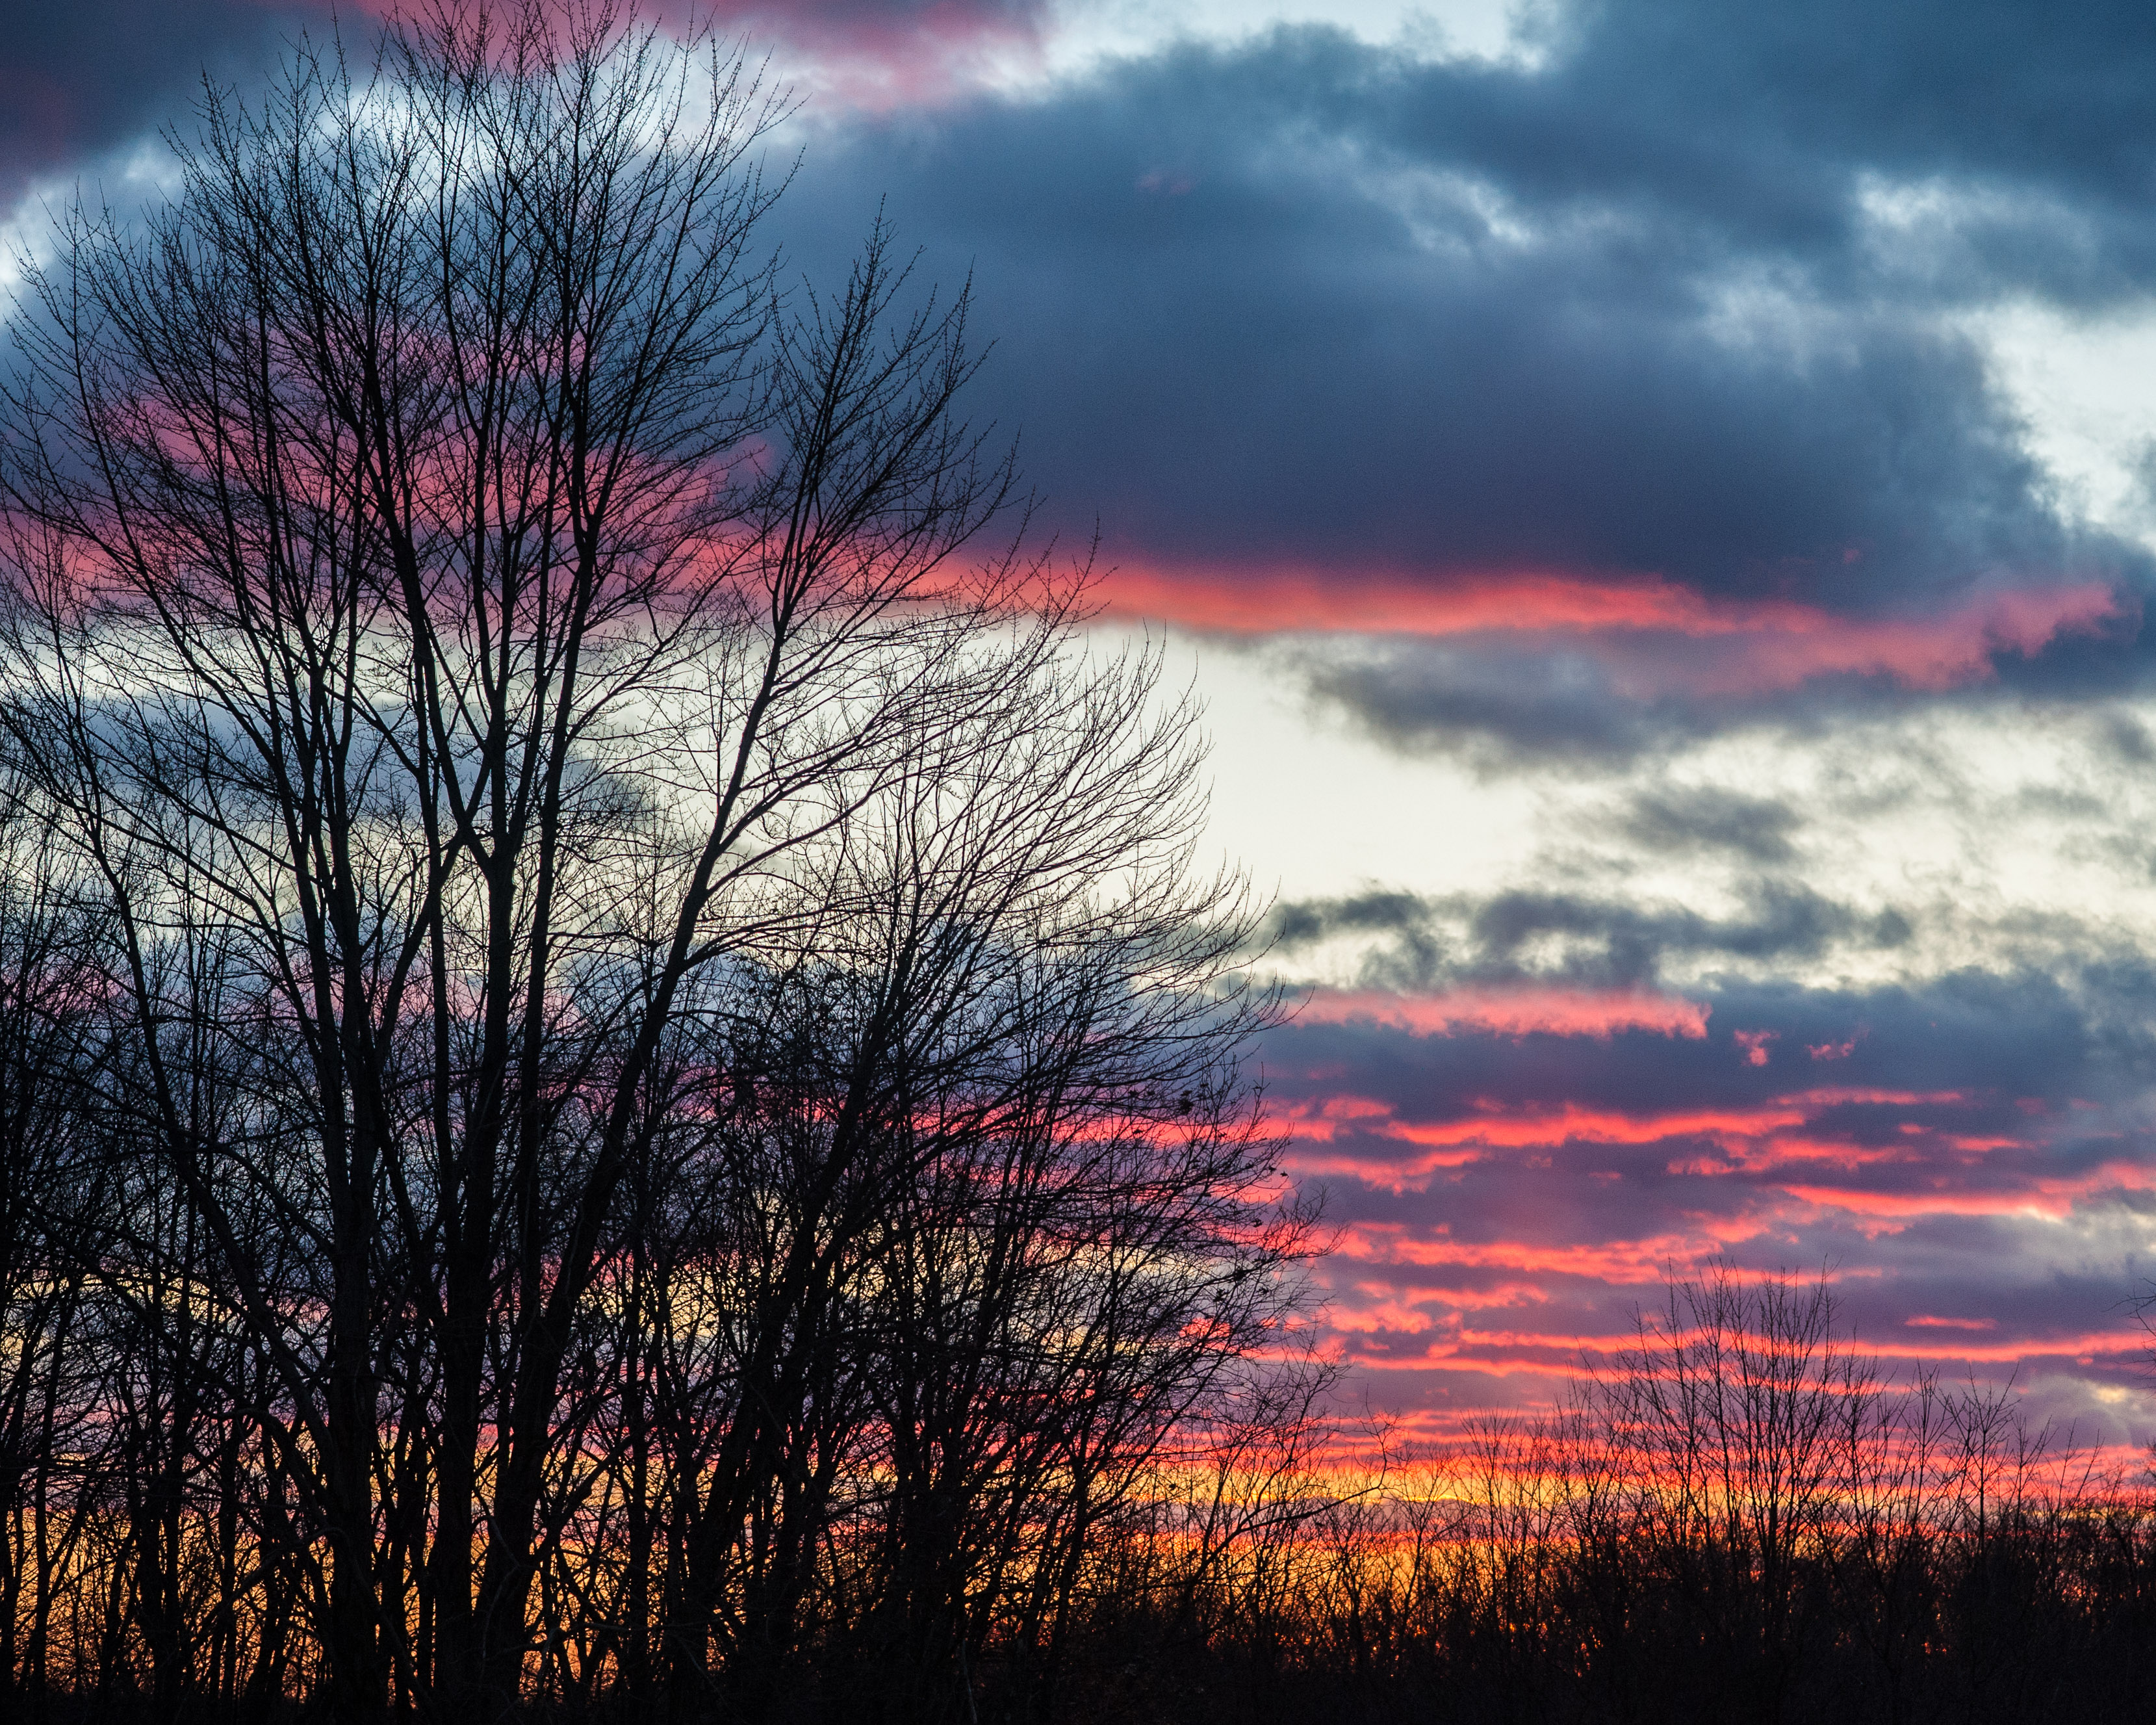 #sunset, #clouds, #trees, #November, #sewickley, #pennsylvania